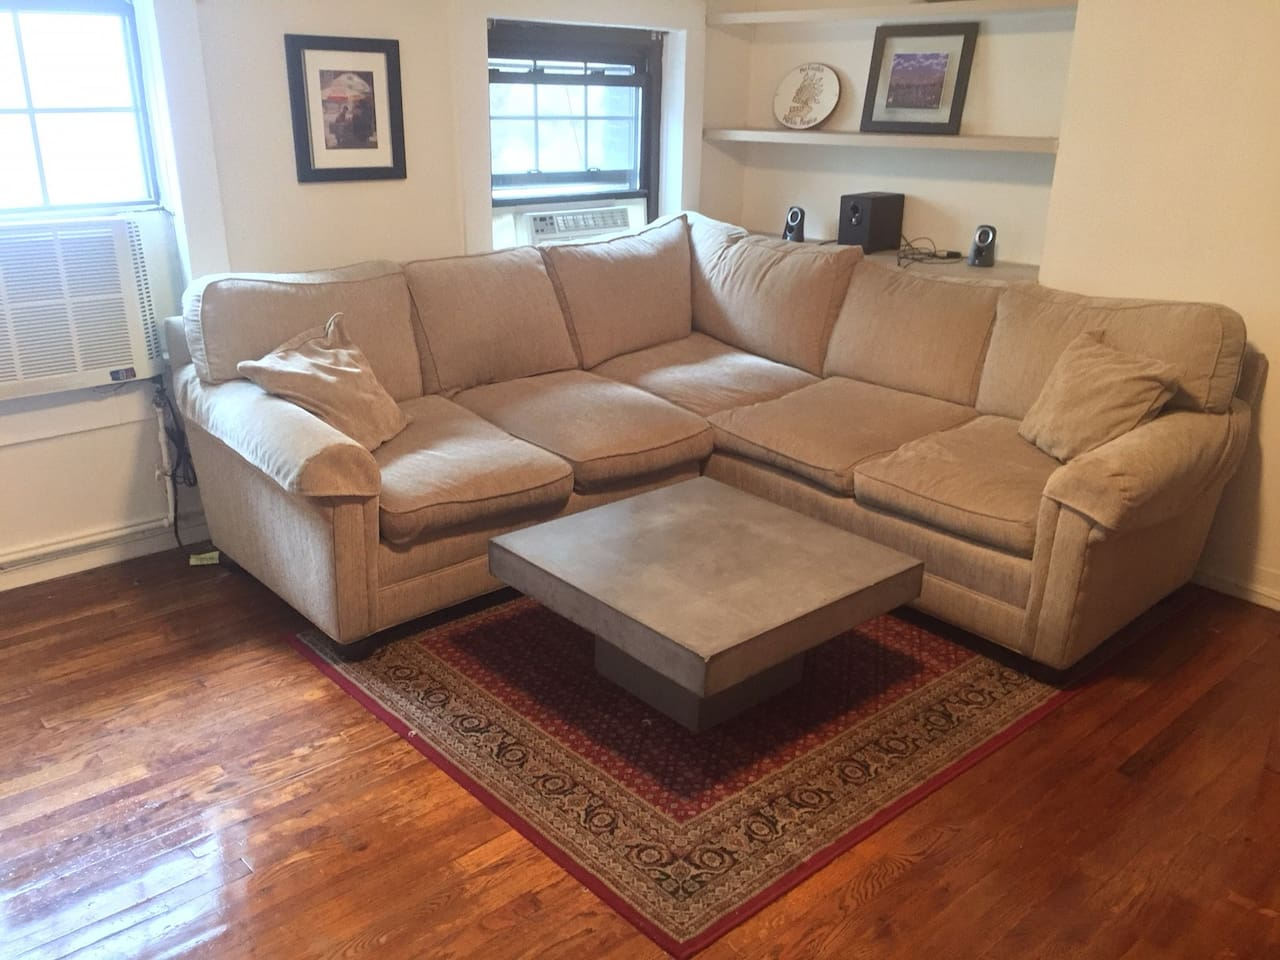 Large sectional couch in spacious living room